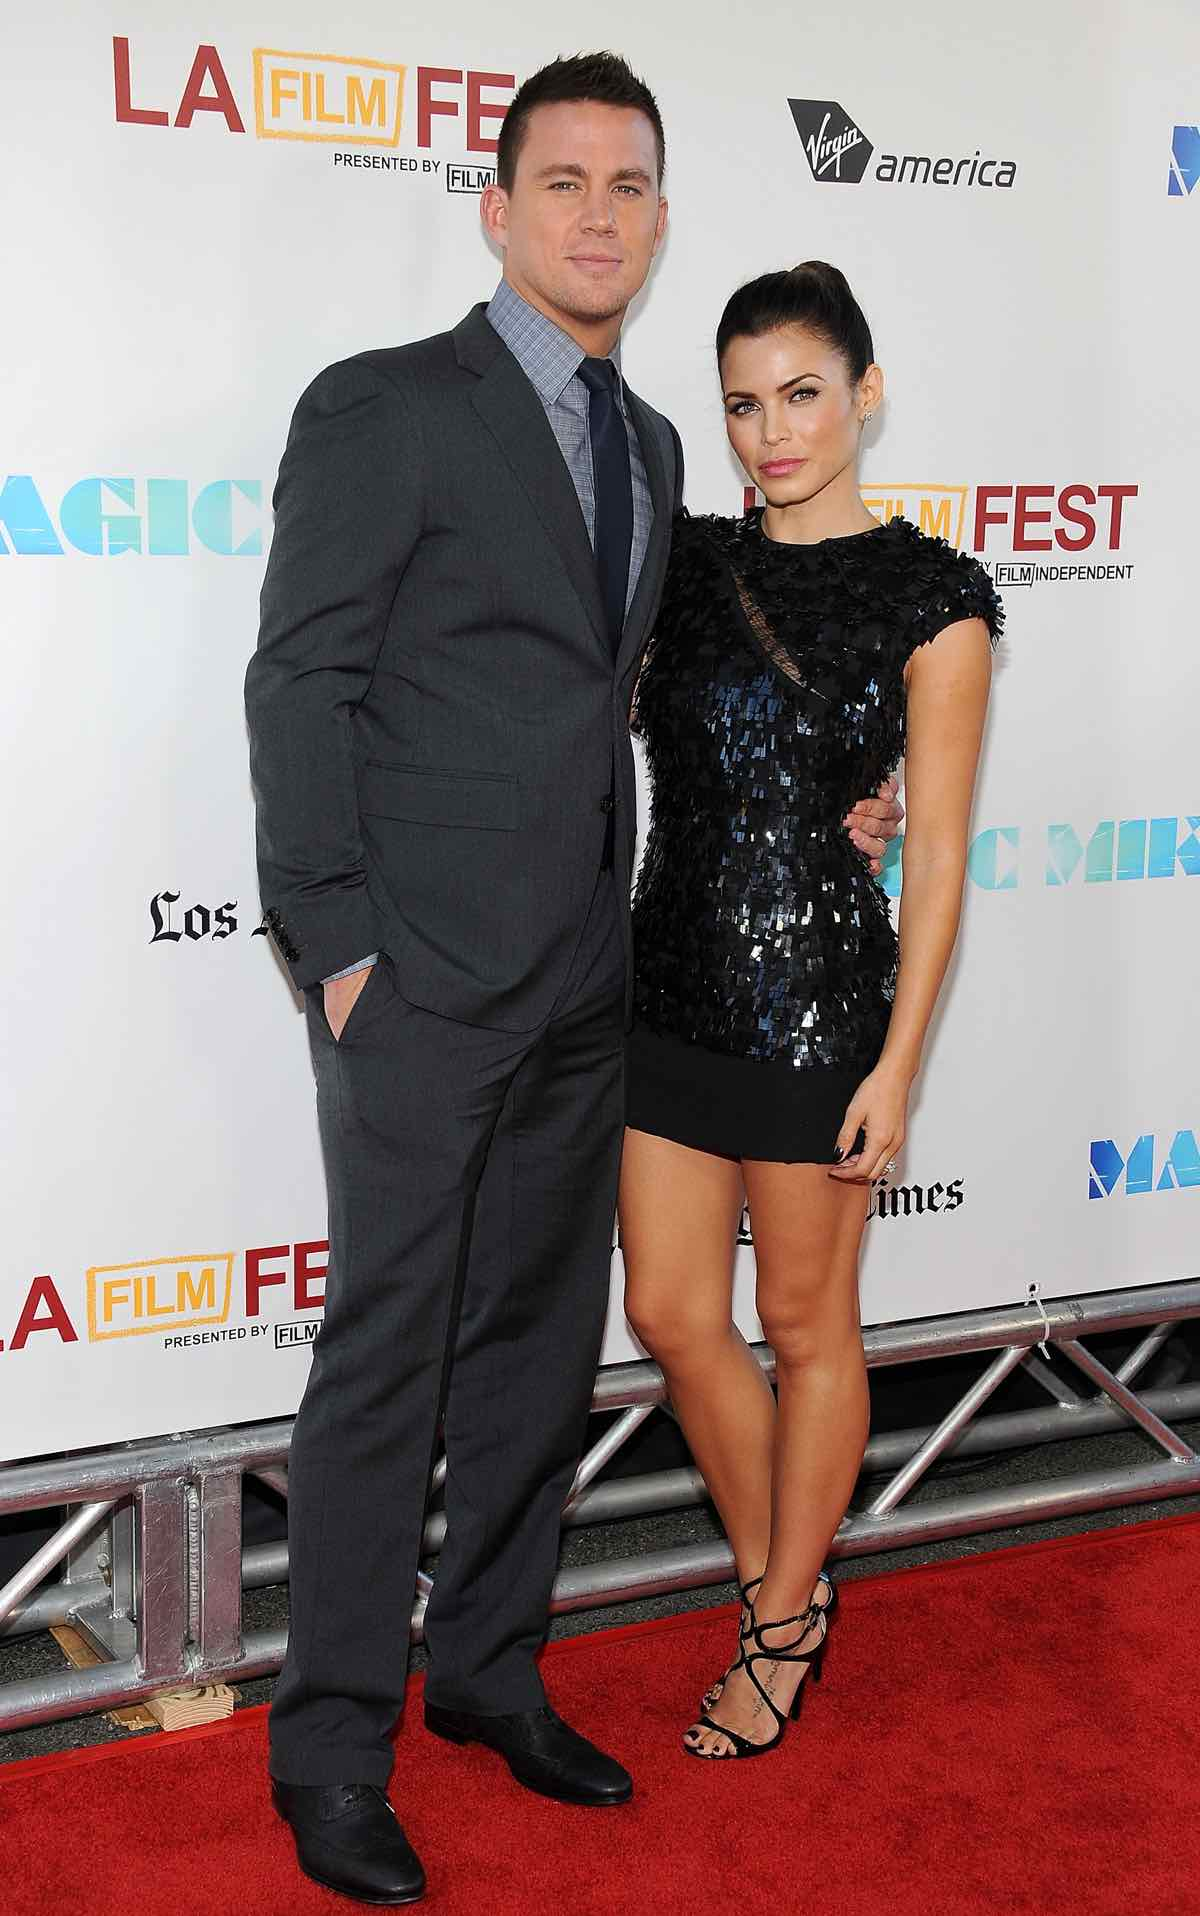 Actor Channing Tatum (L) and actress Jen